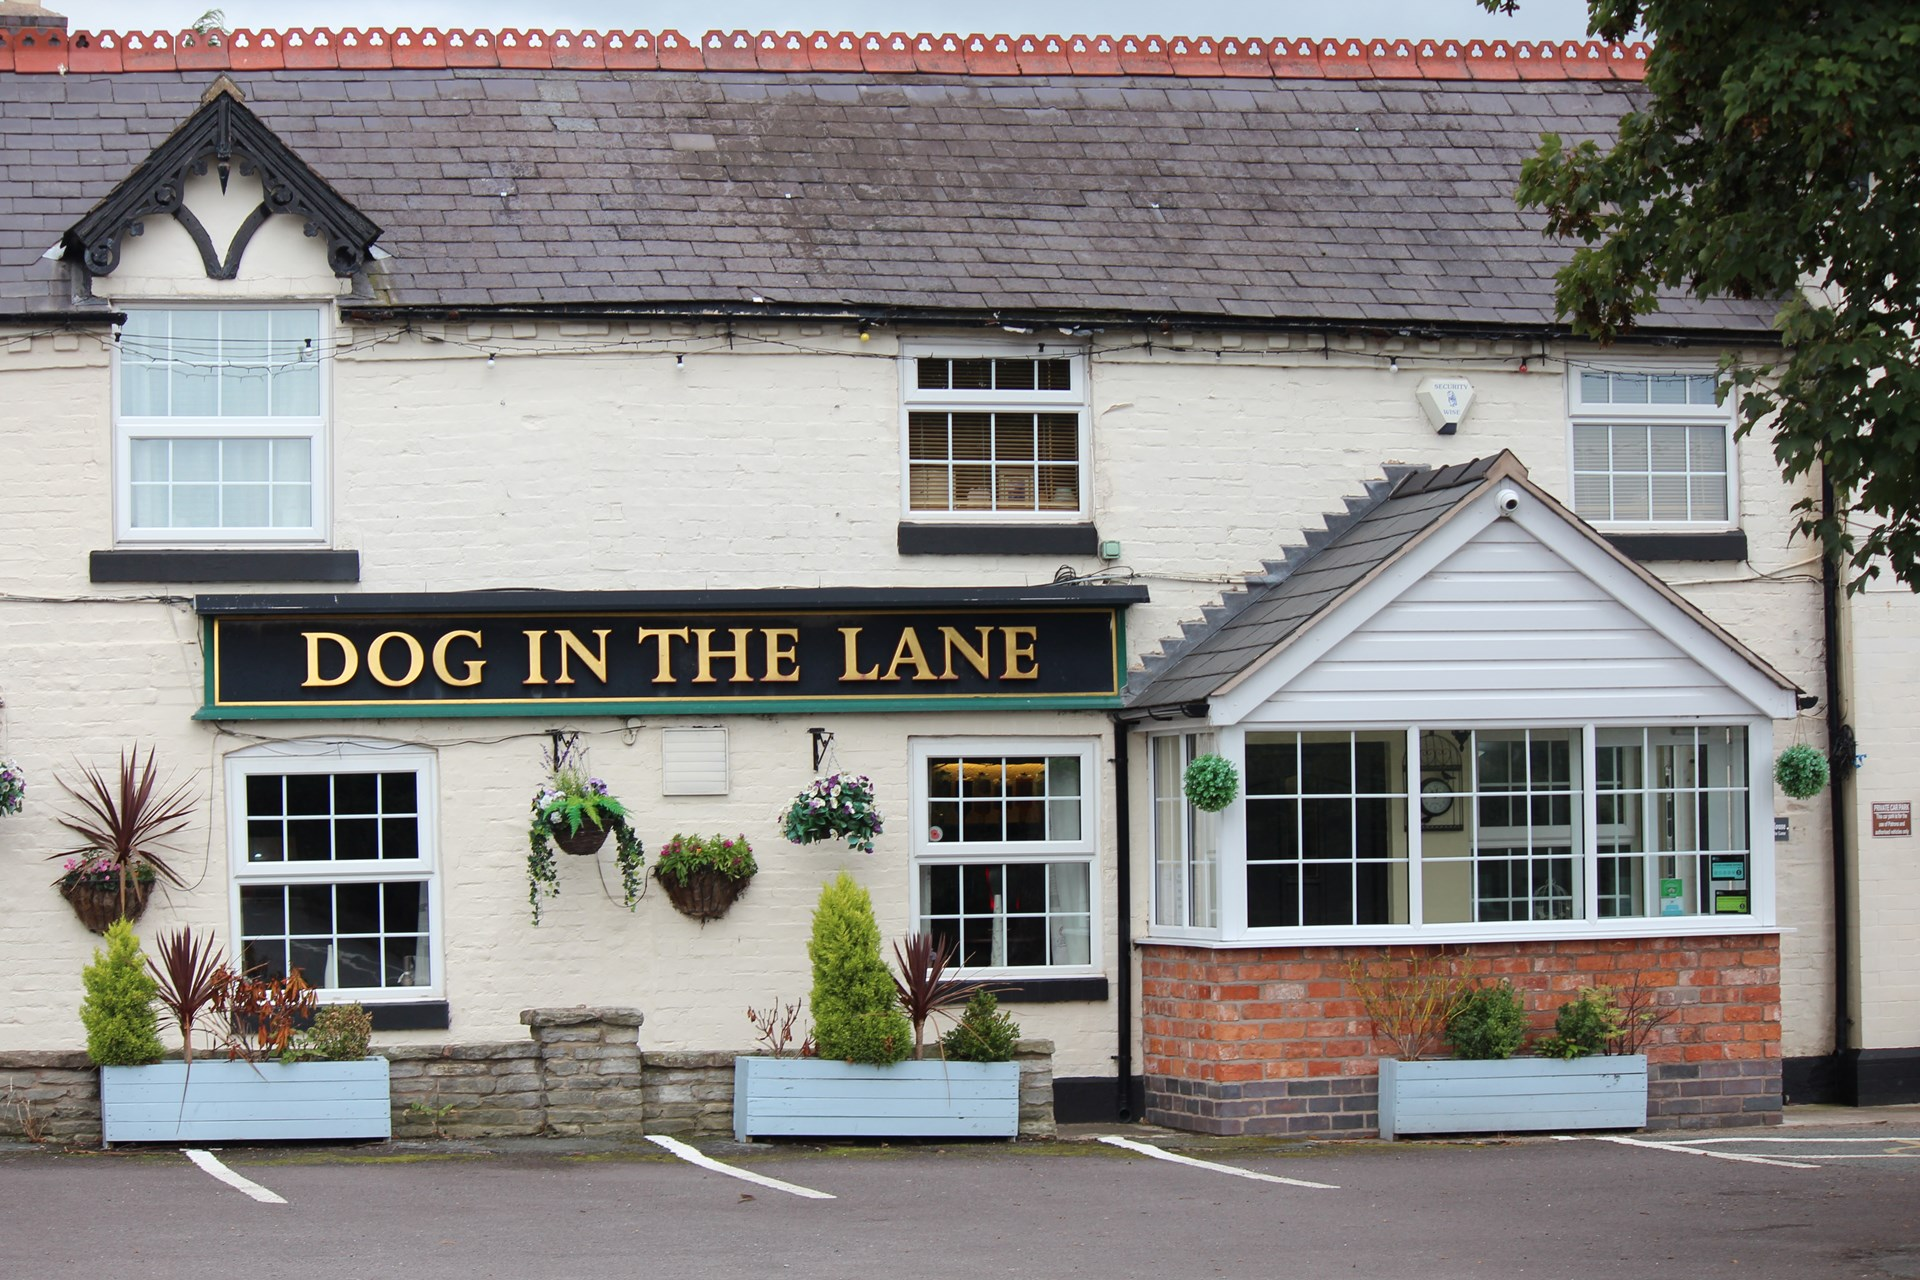 The Dog in the Lane